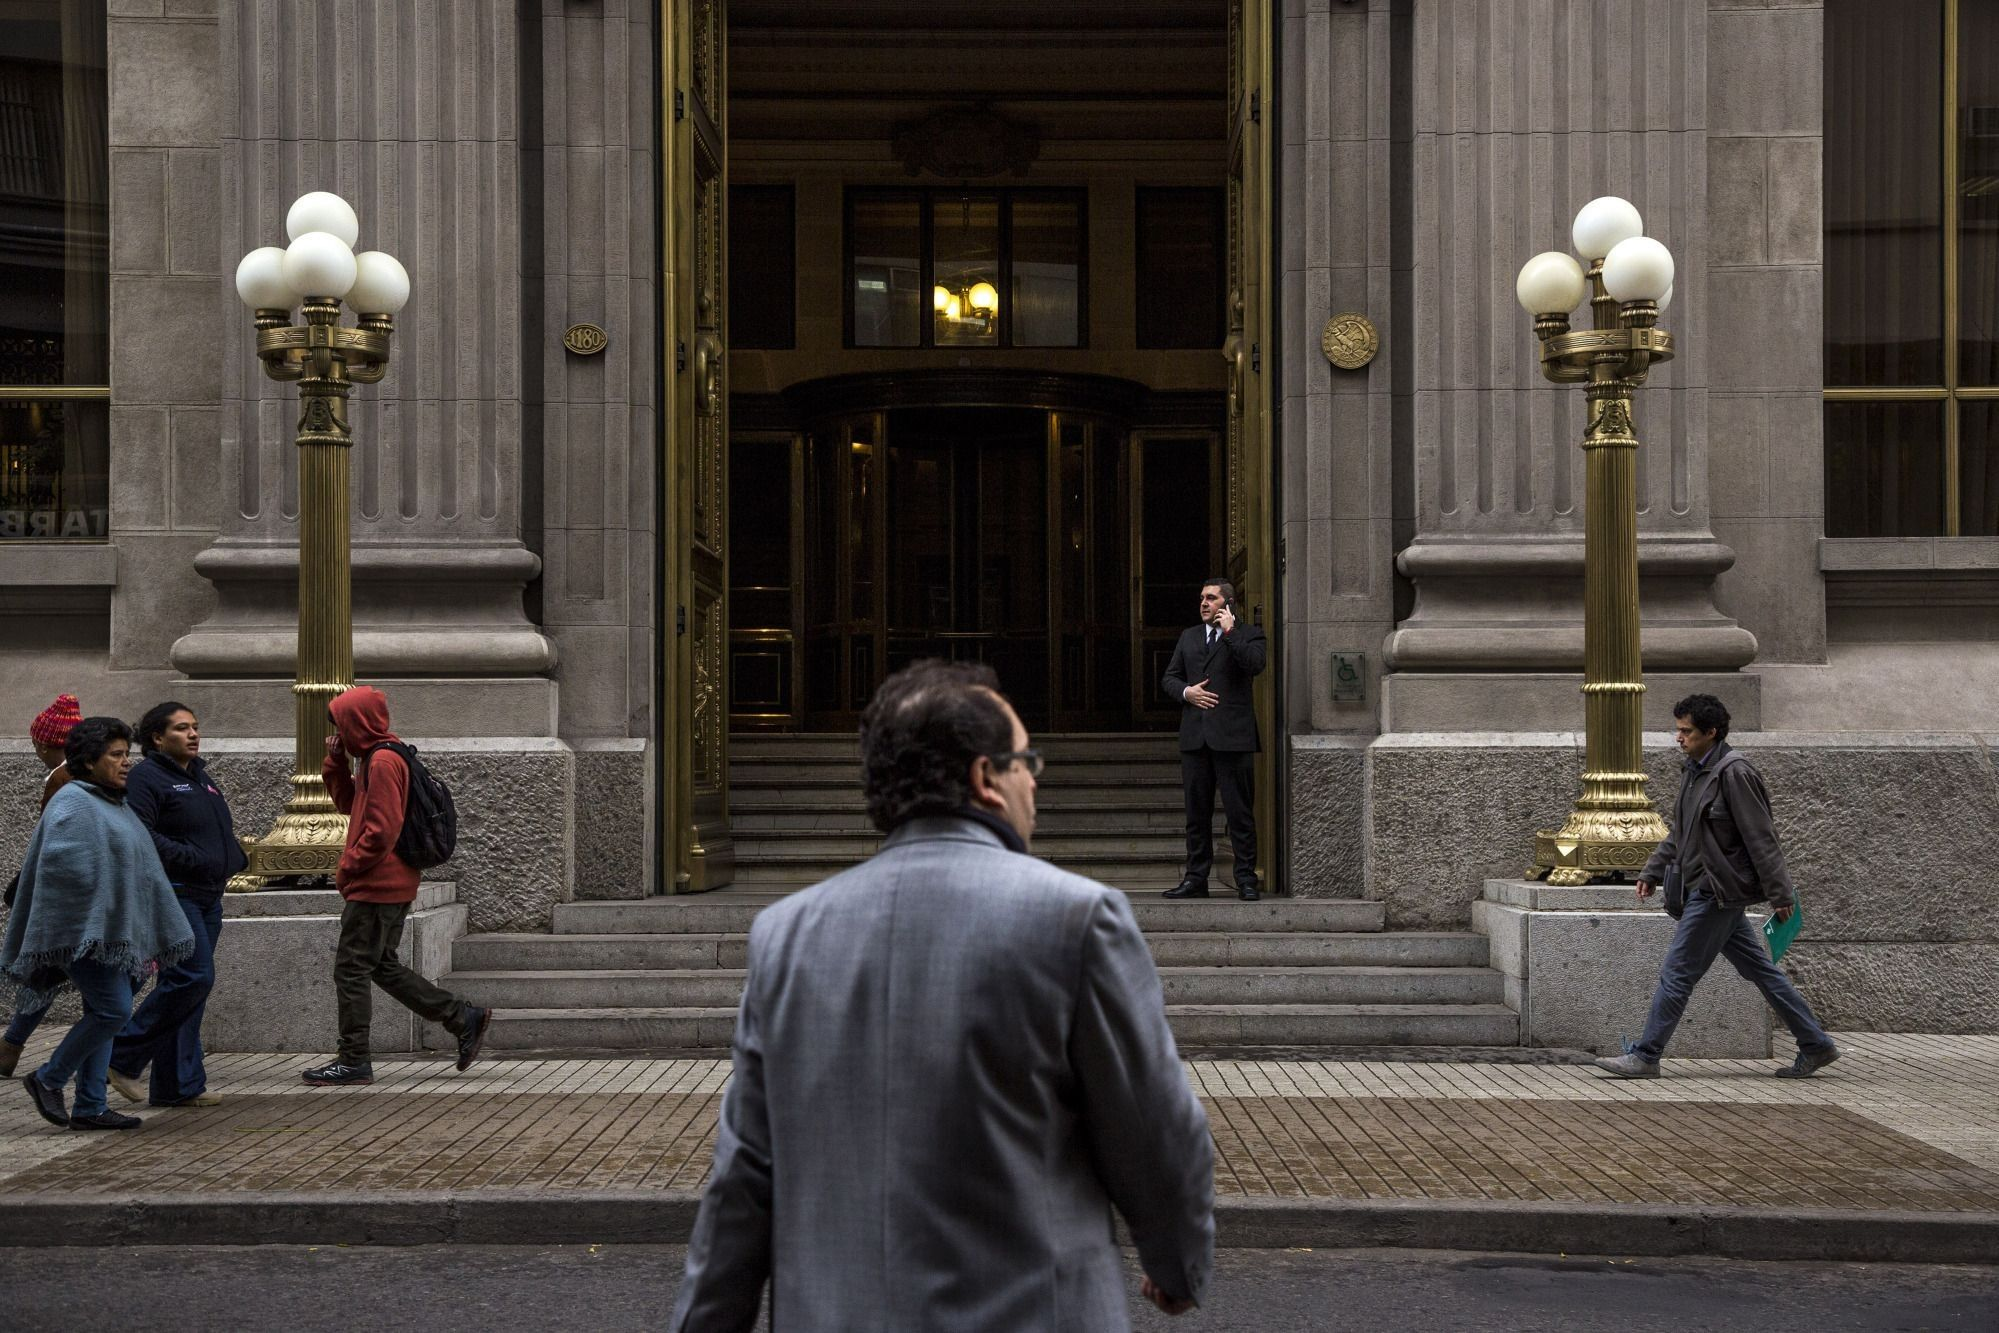 Financial And Governmental Institutions As Chile Mulls Tax Cuts For The Rich To Fuel Economic Recovery